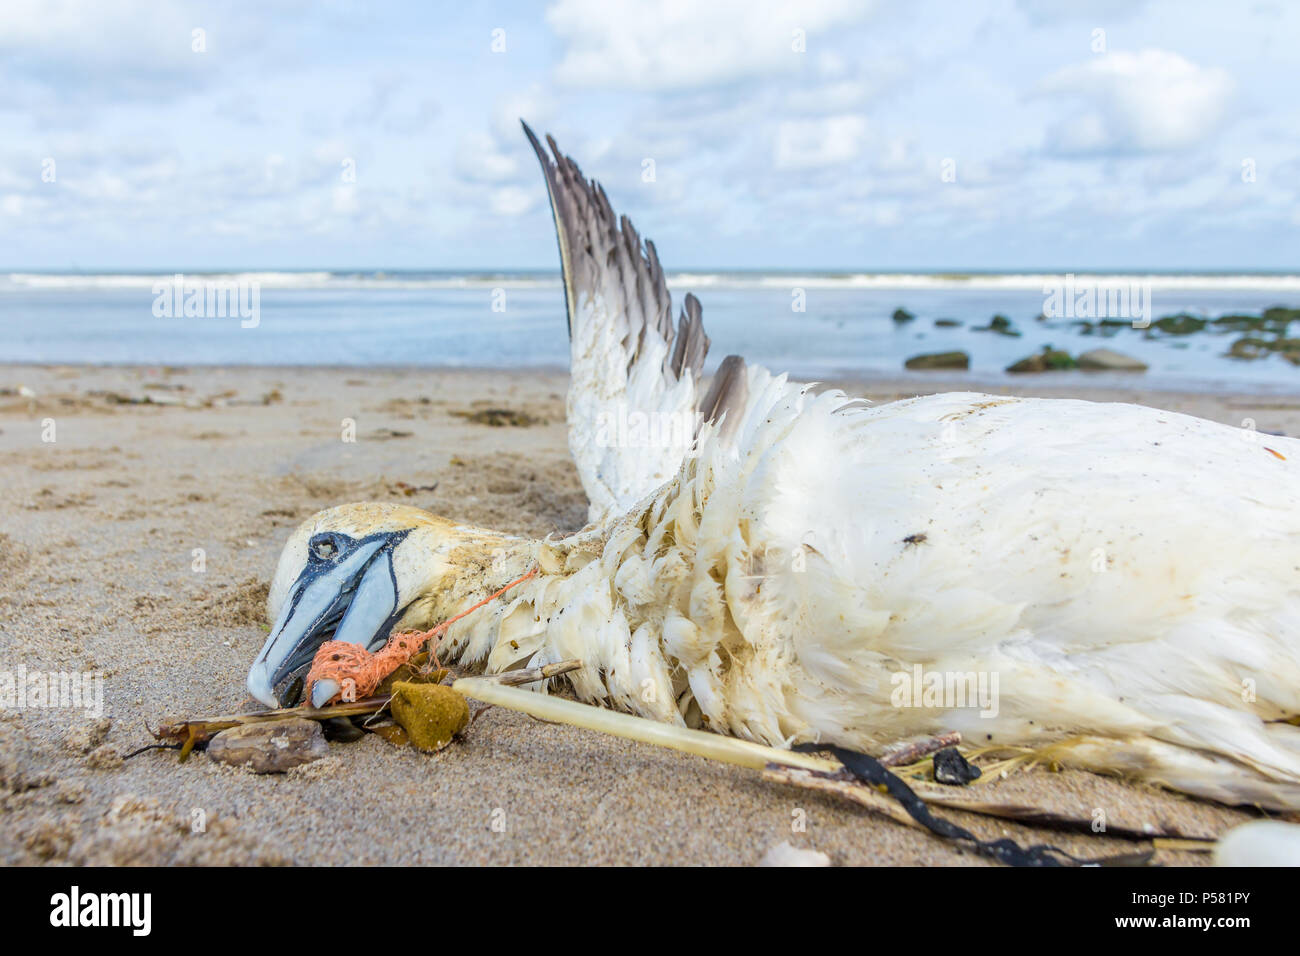 dead northern gannet trapped in plastic fishing net washed ashore on Kijkduin beach The Hague - Stock Image